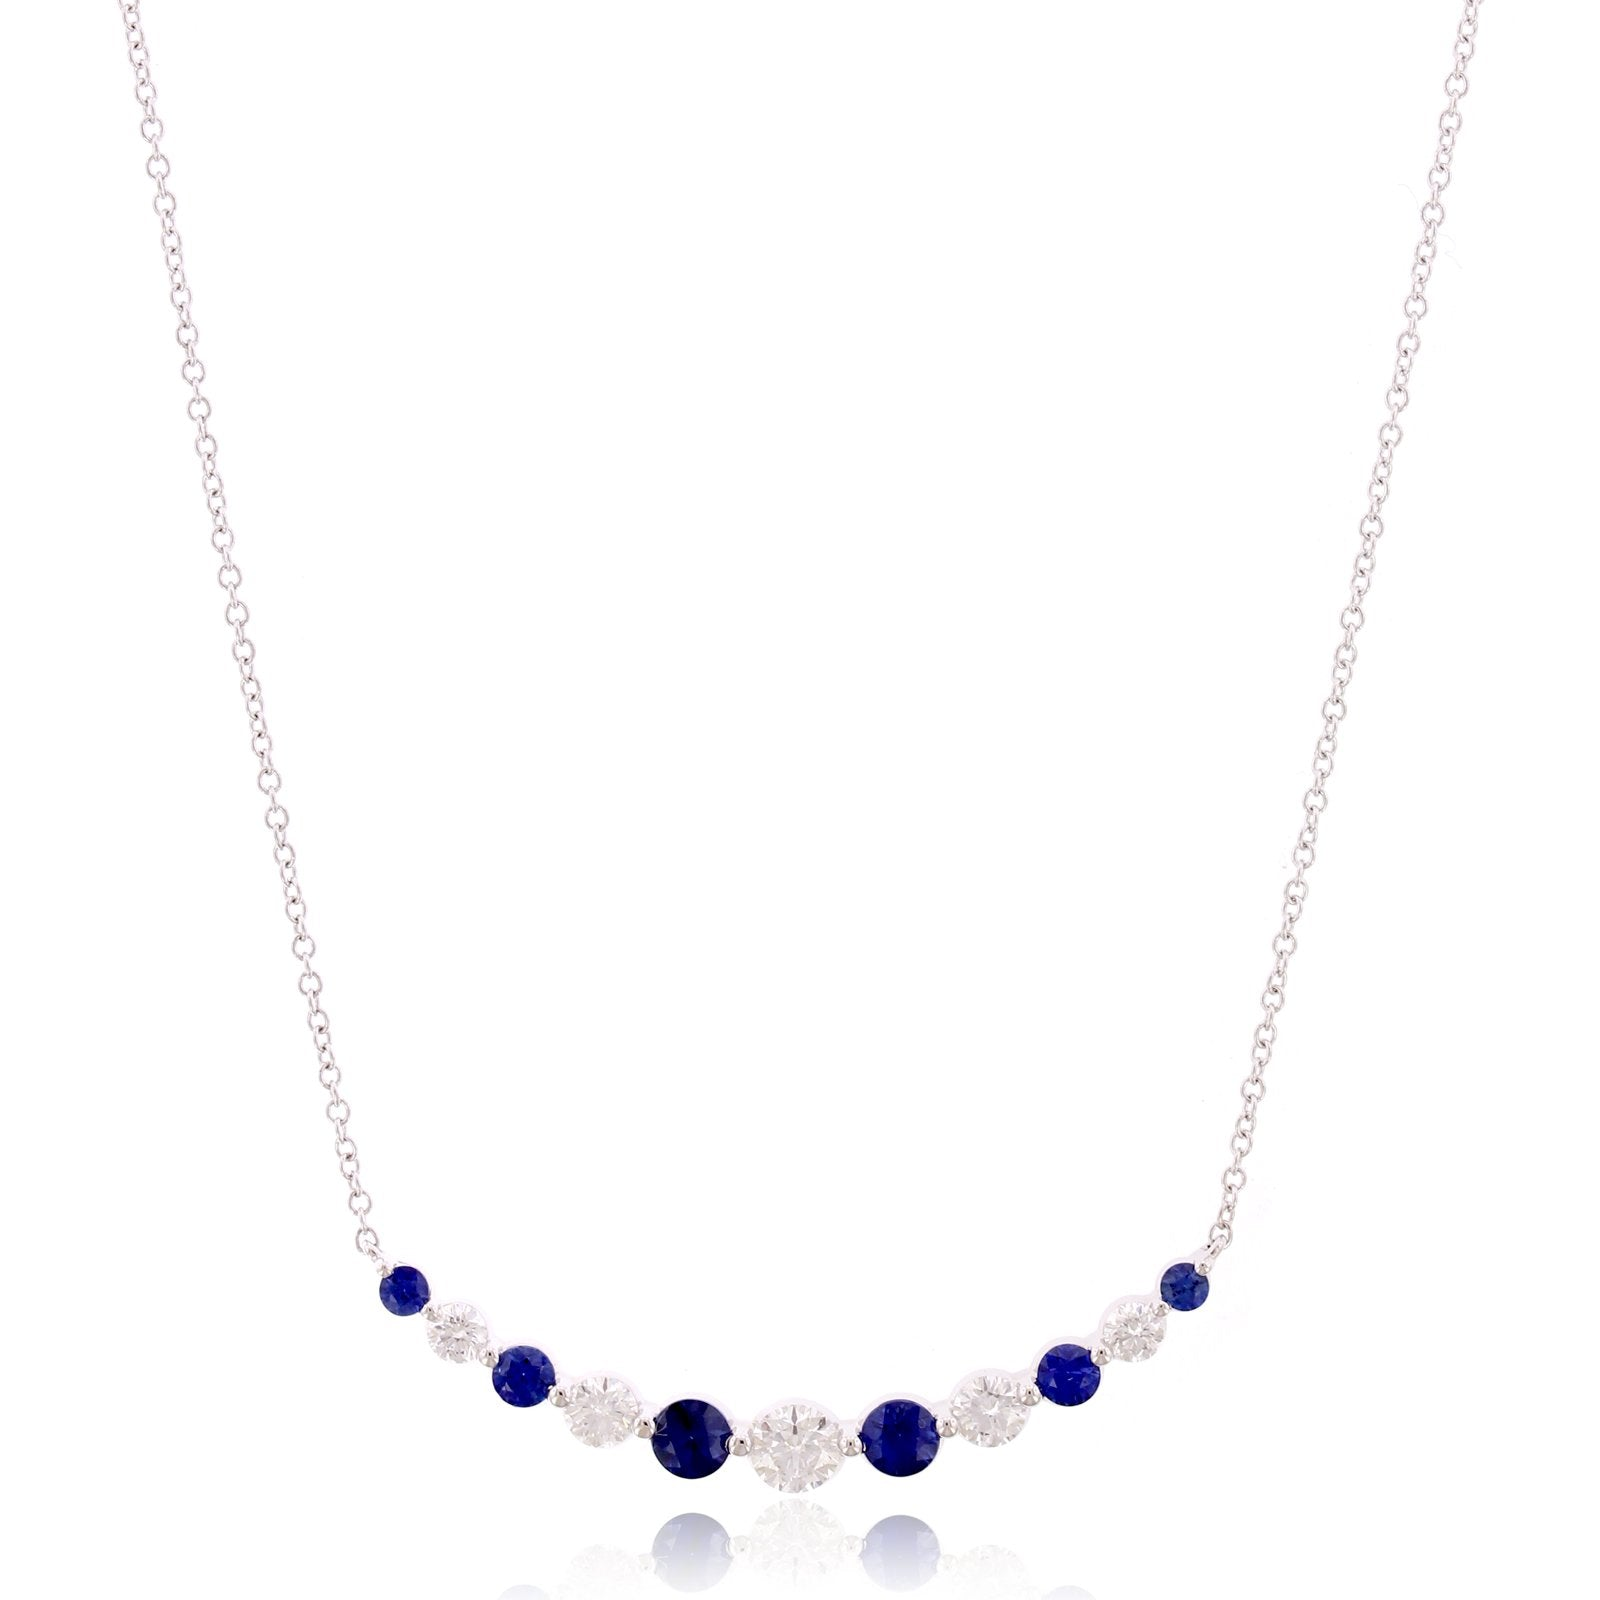 18K White Gold Diamond and Sapphire Curve Necklace